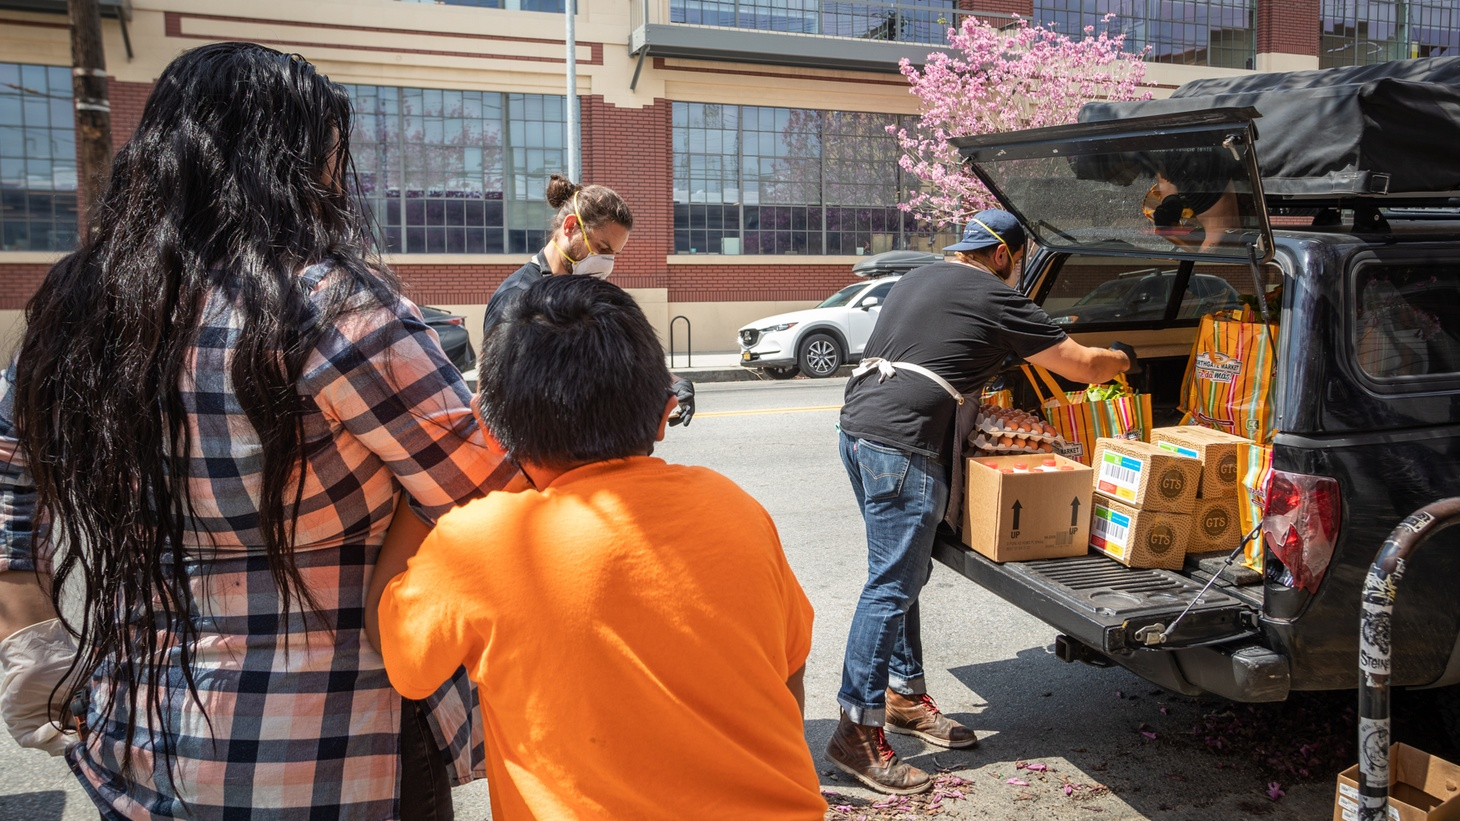 Othón Nolasco and Damian Diaz are the men behind No Us Without You, which fed 10 families on their first day. Nine months later the organization is feeding 1400 families a week.